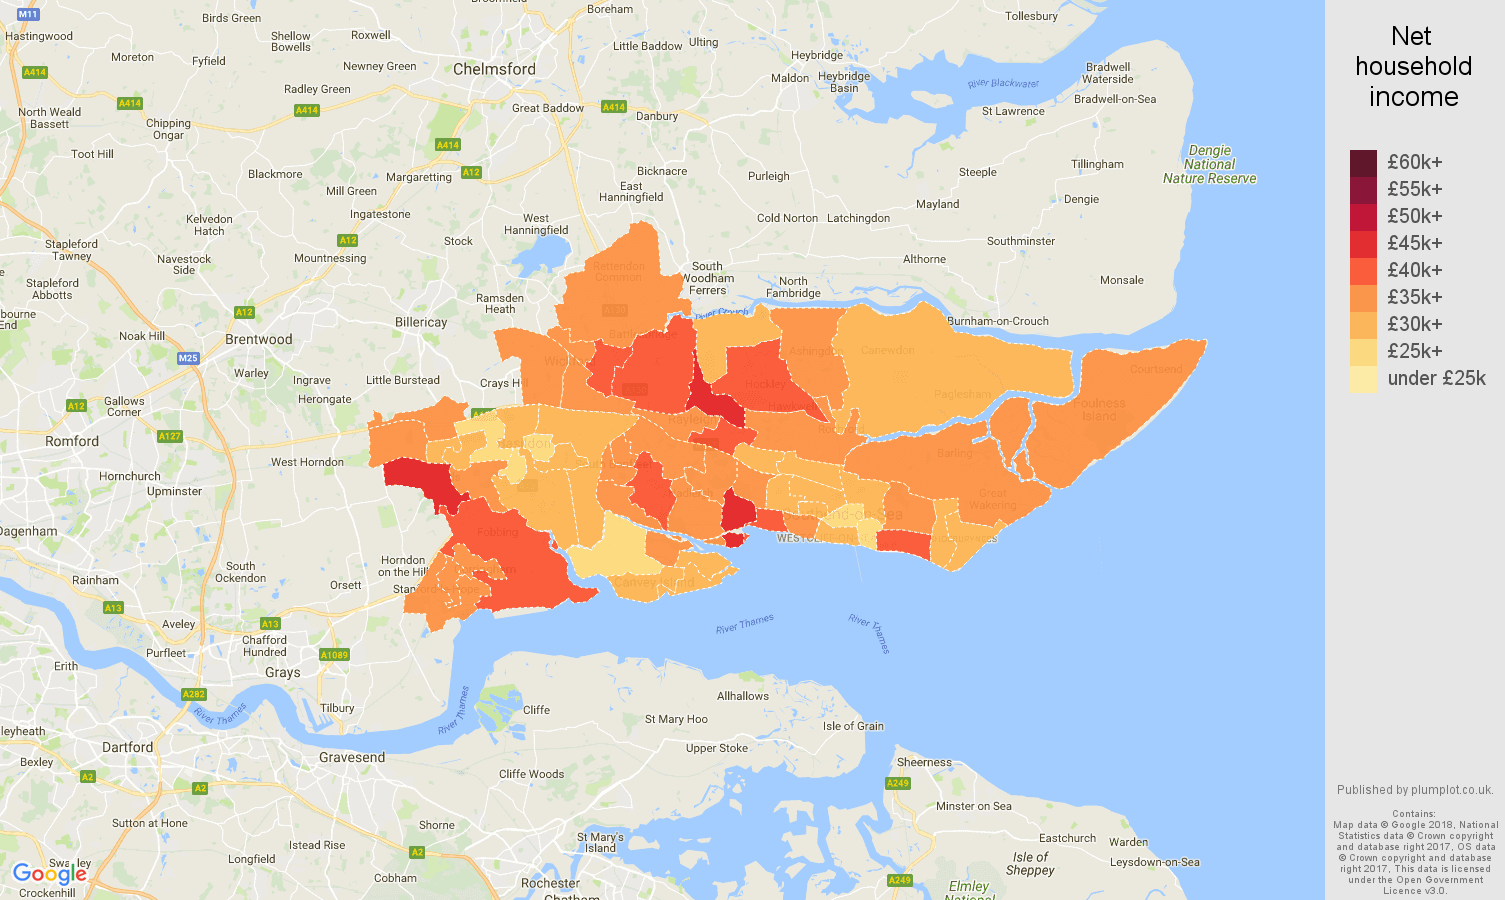 Southend on Sea net household income map